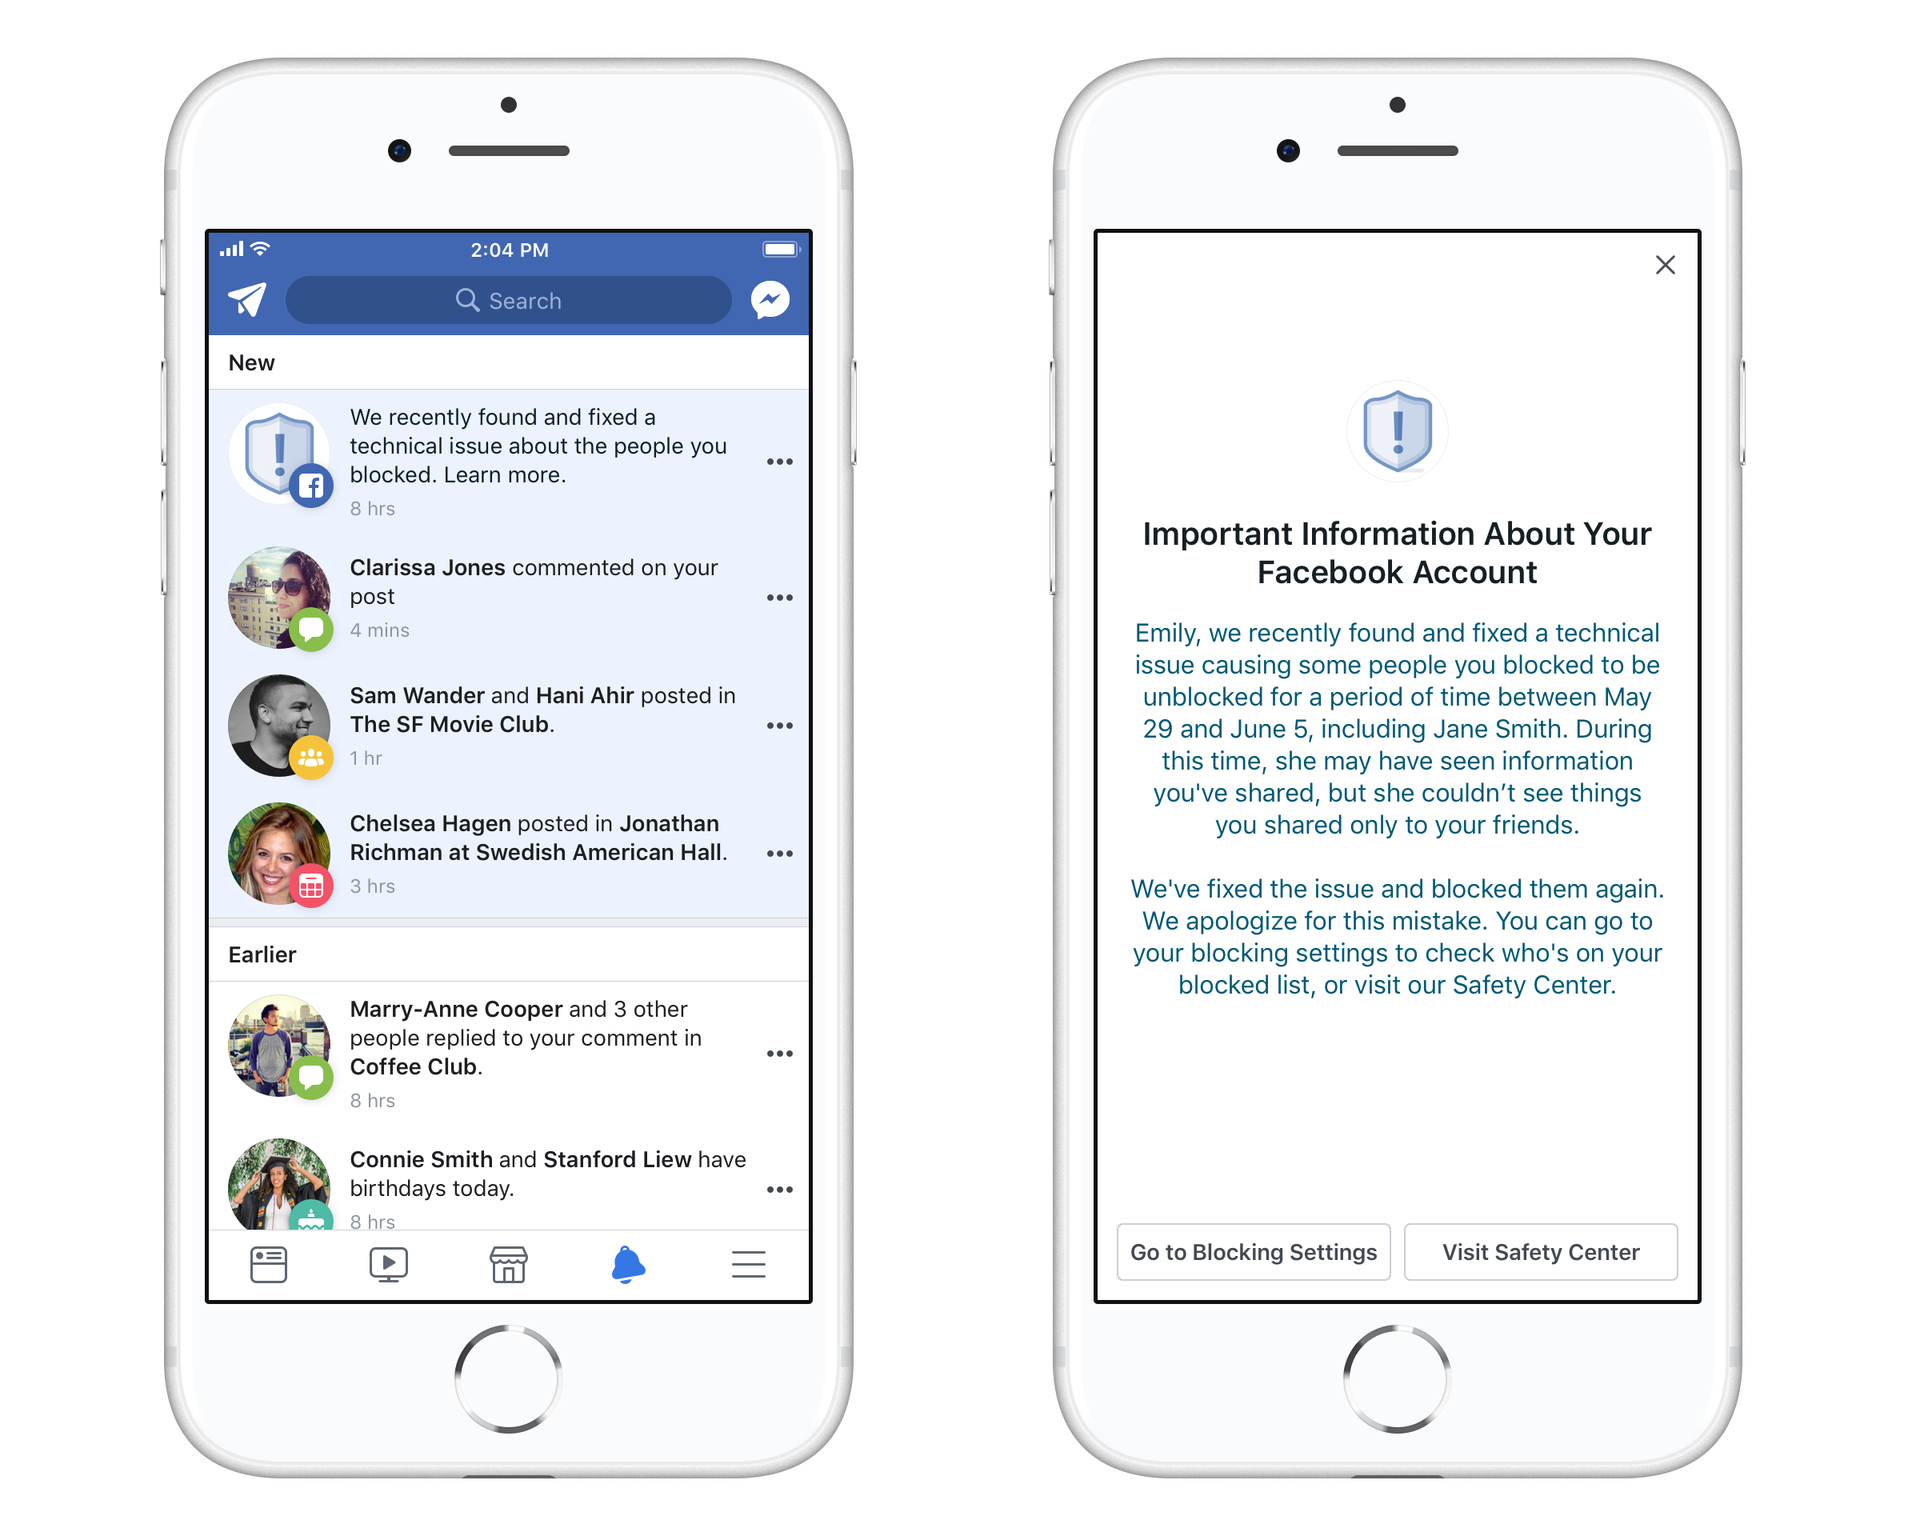 Facebook is notifying 800,000 users affected by a blocking bug